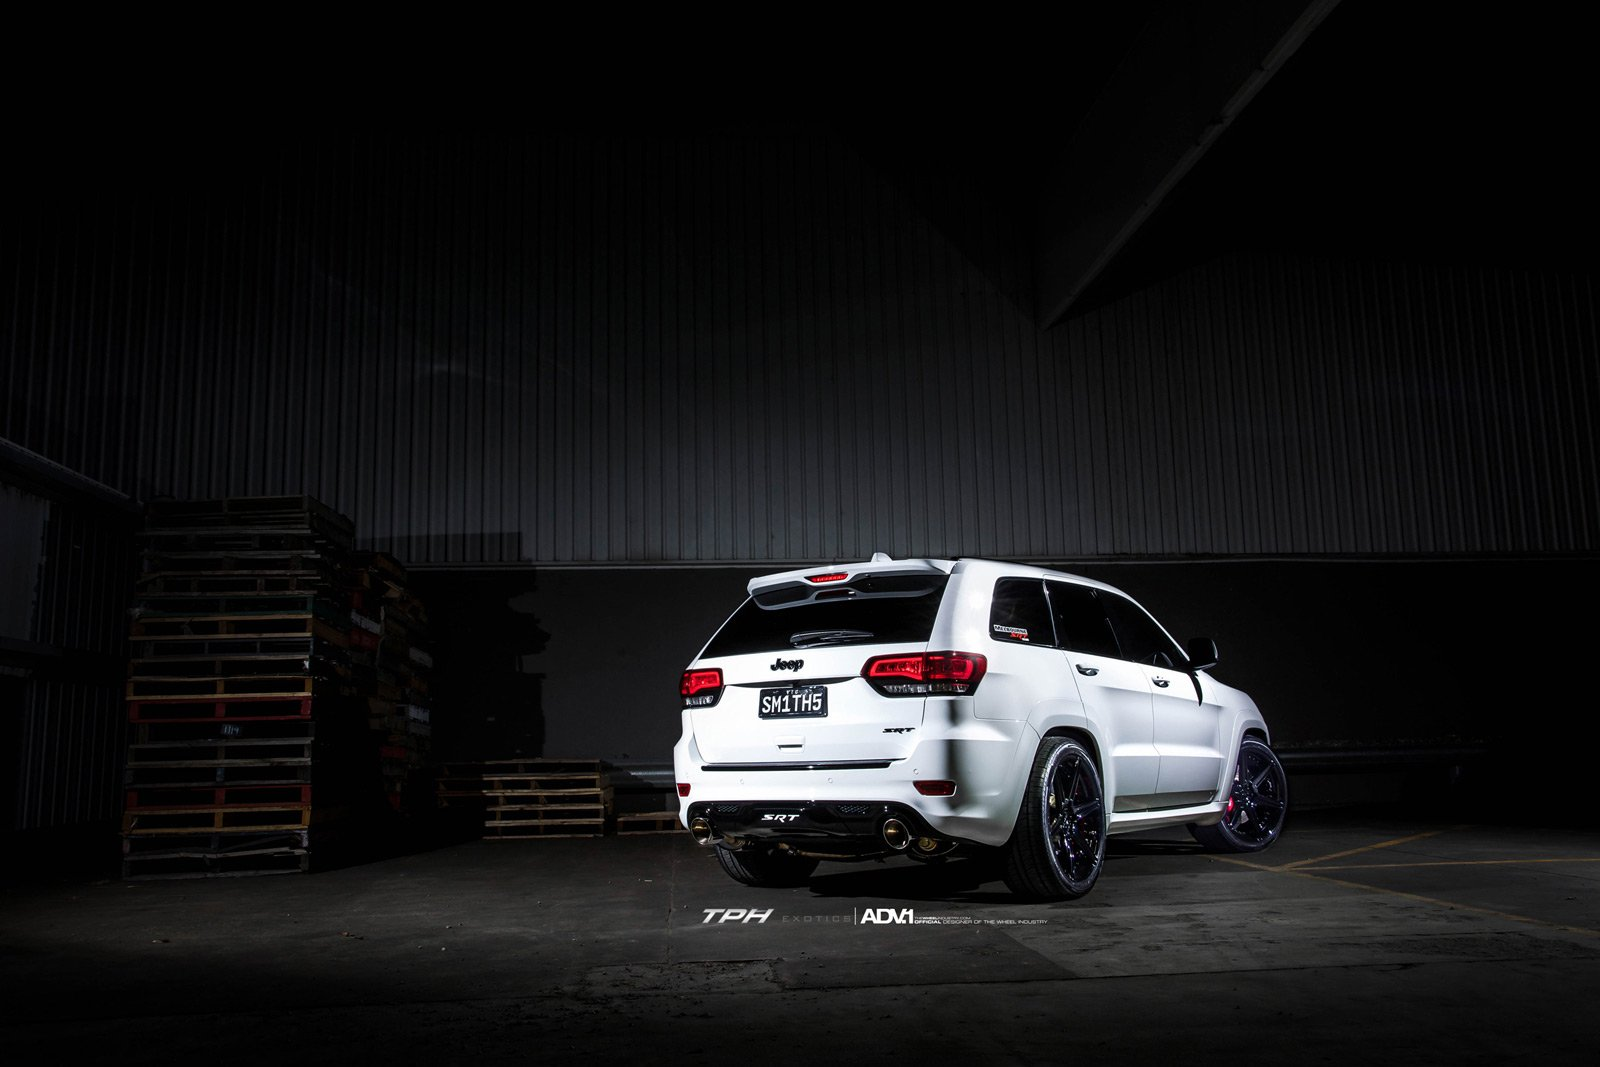 Jeep Grand Cherokee White 2017 >> ADV1 WHEELS JEEP GRAND CHEROKEE SRT8 cars suv tuning 2015 wallpaper | 1600x1067 | 653645 ...